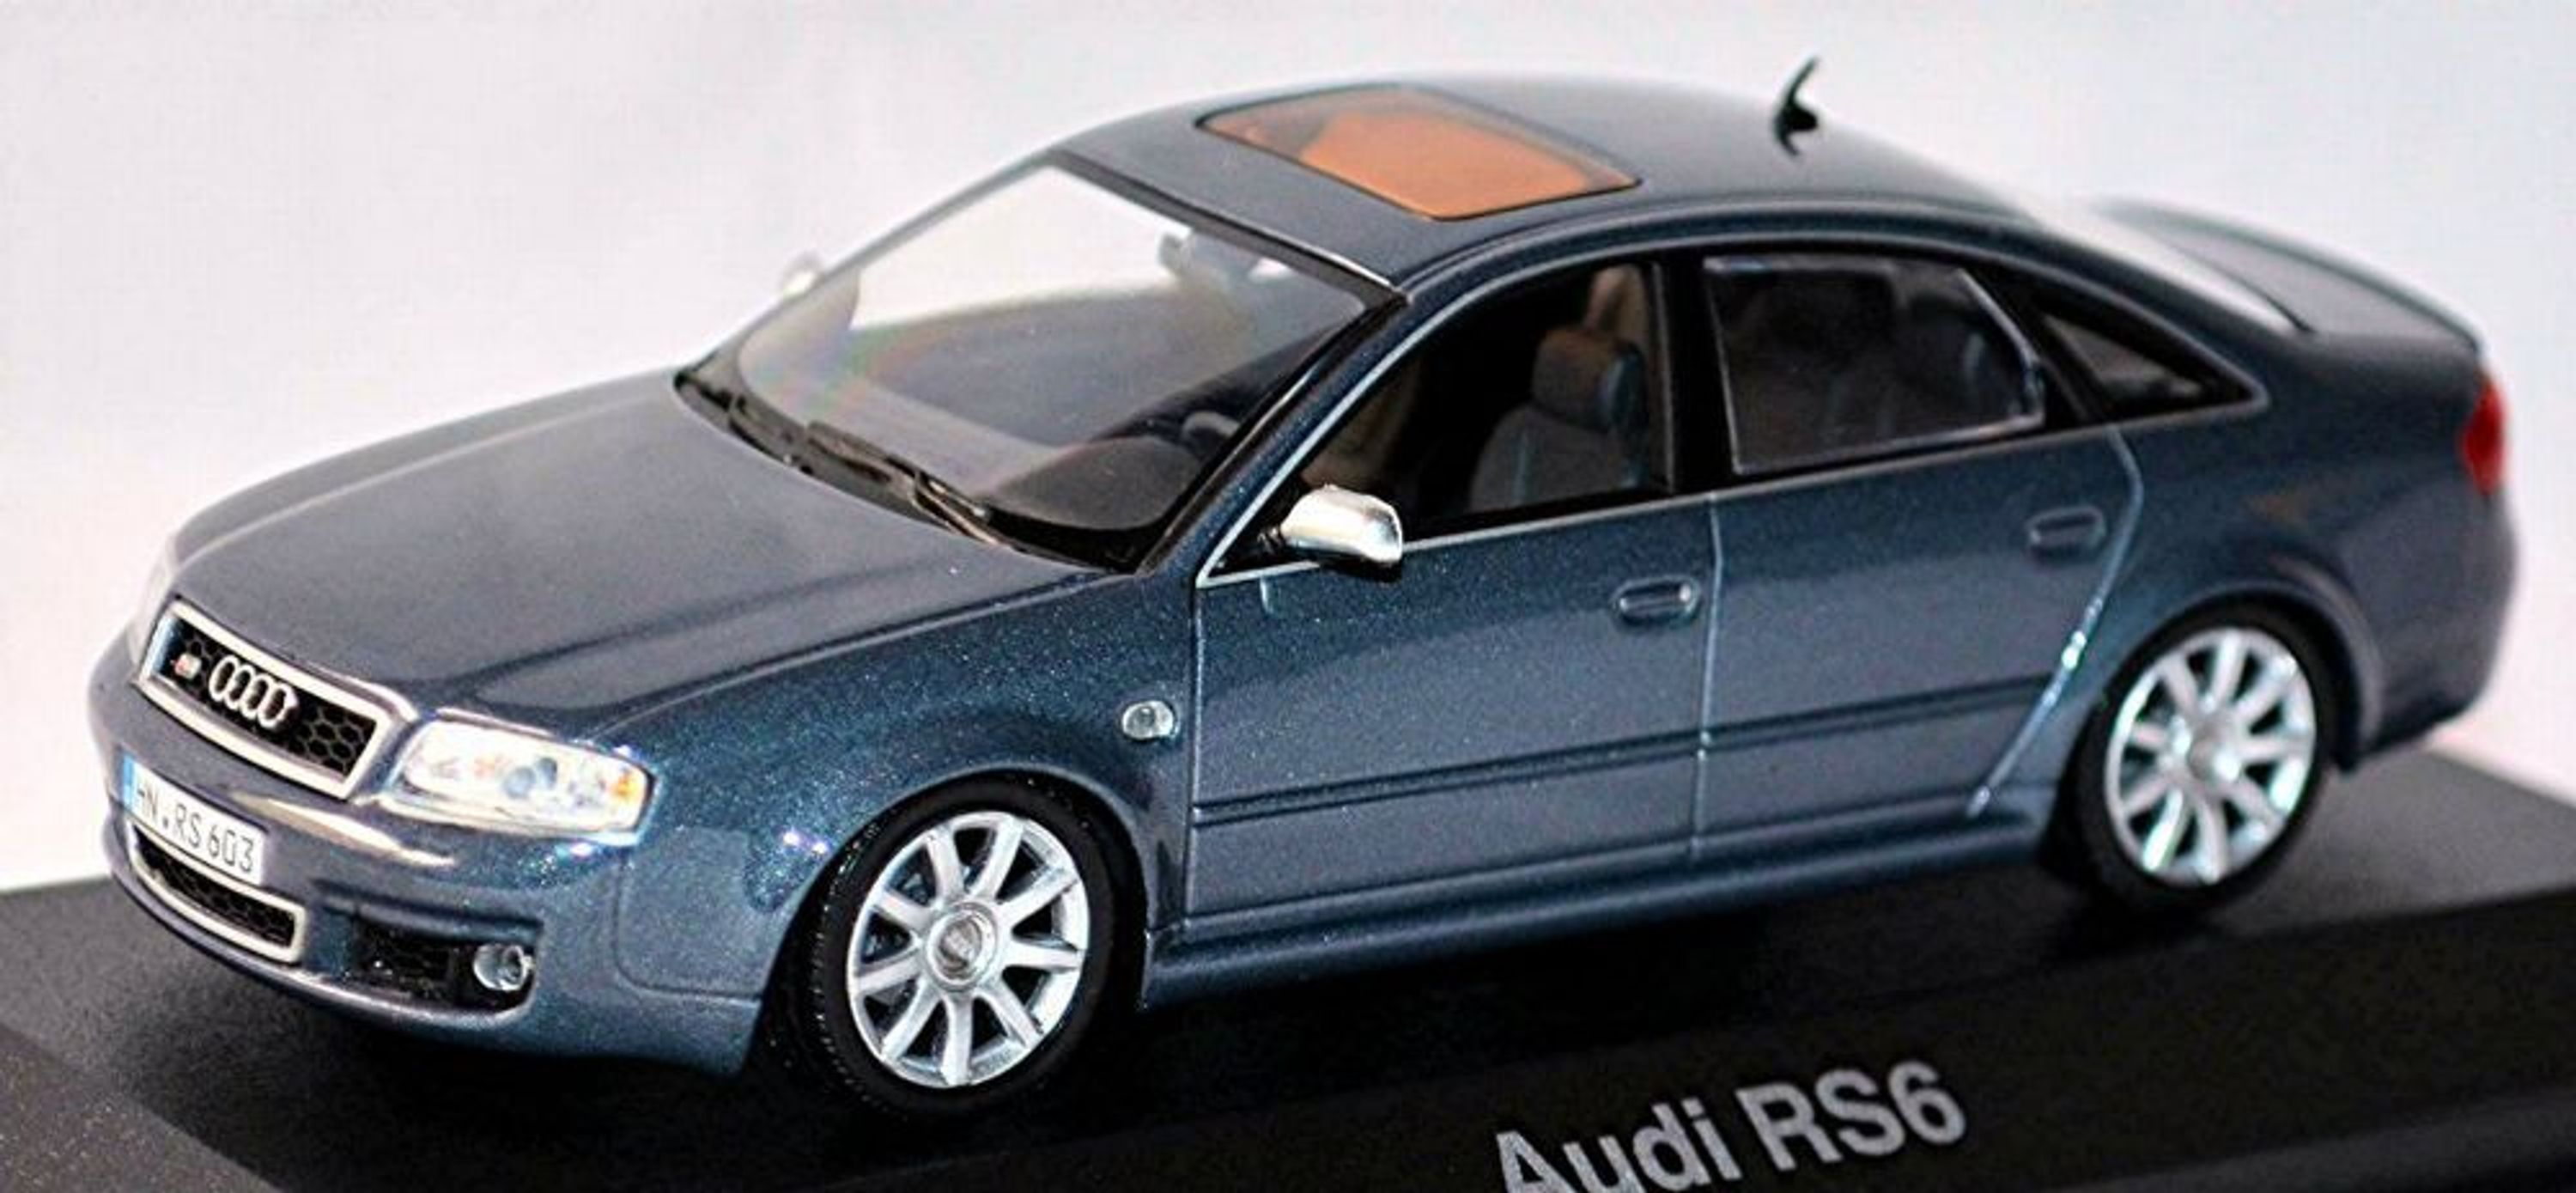 audi rs6 c5 limousine 2002 04 gray gray metallic 1 43 ebay. Black Bedroom Furniture Sets. Home Design Ideas